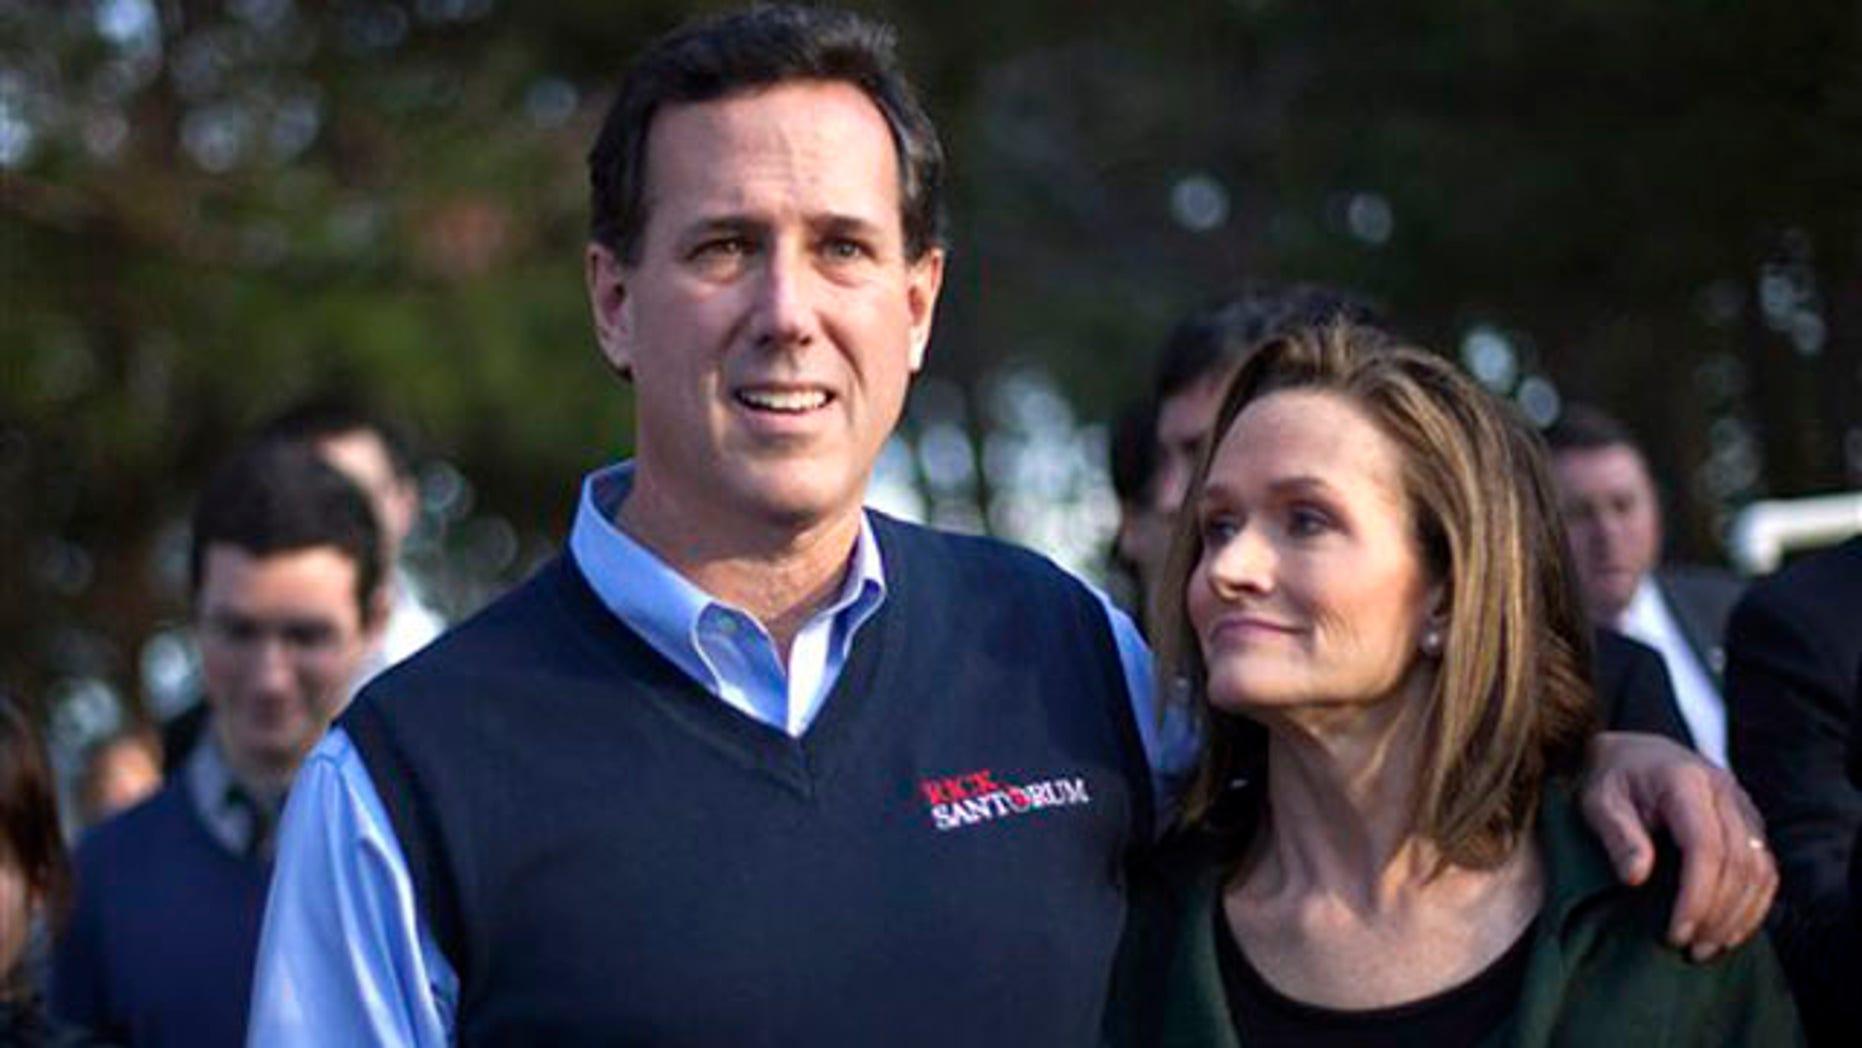 Jan. 16, 2012: Rick Santorum and his wife Karen leave the Faith and Freedom Coalition rally in Myrtle Beach, S.C.